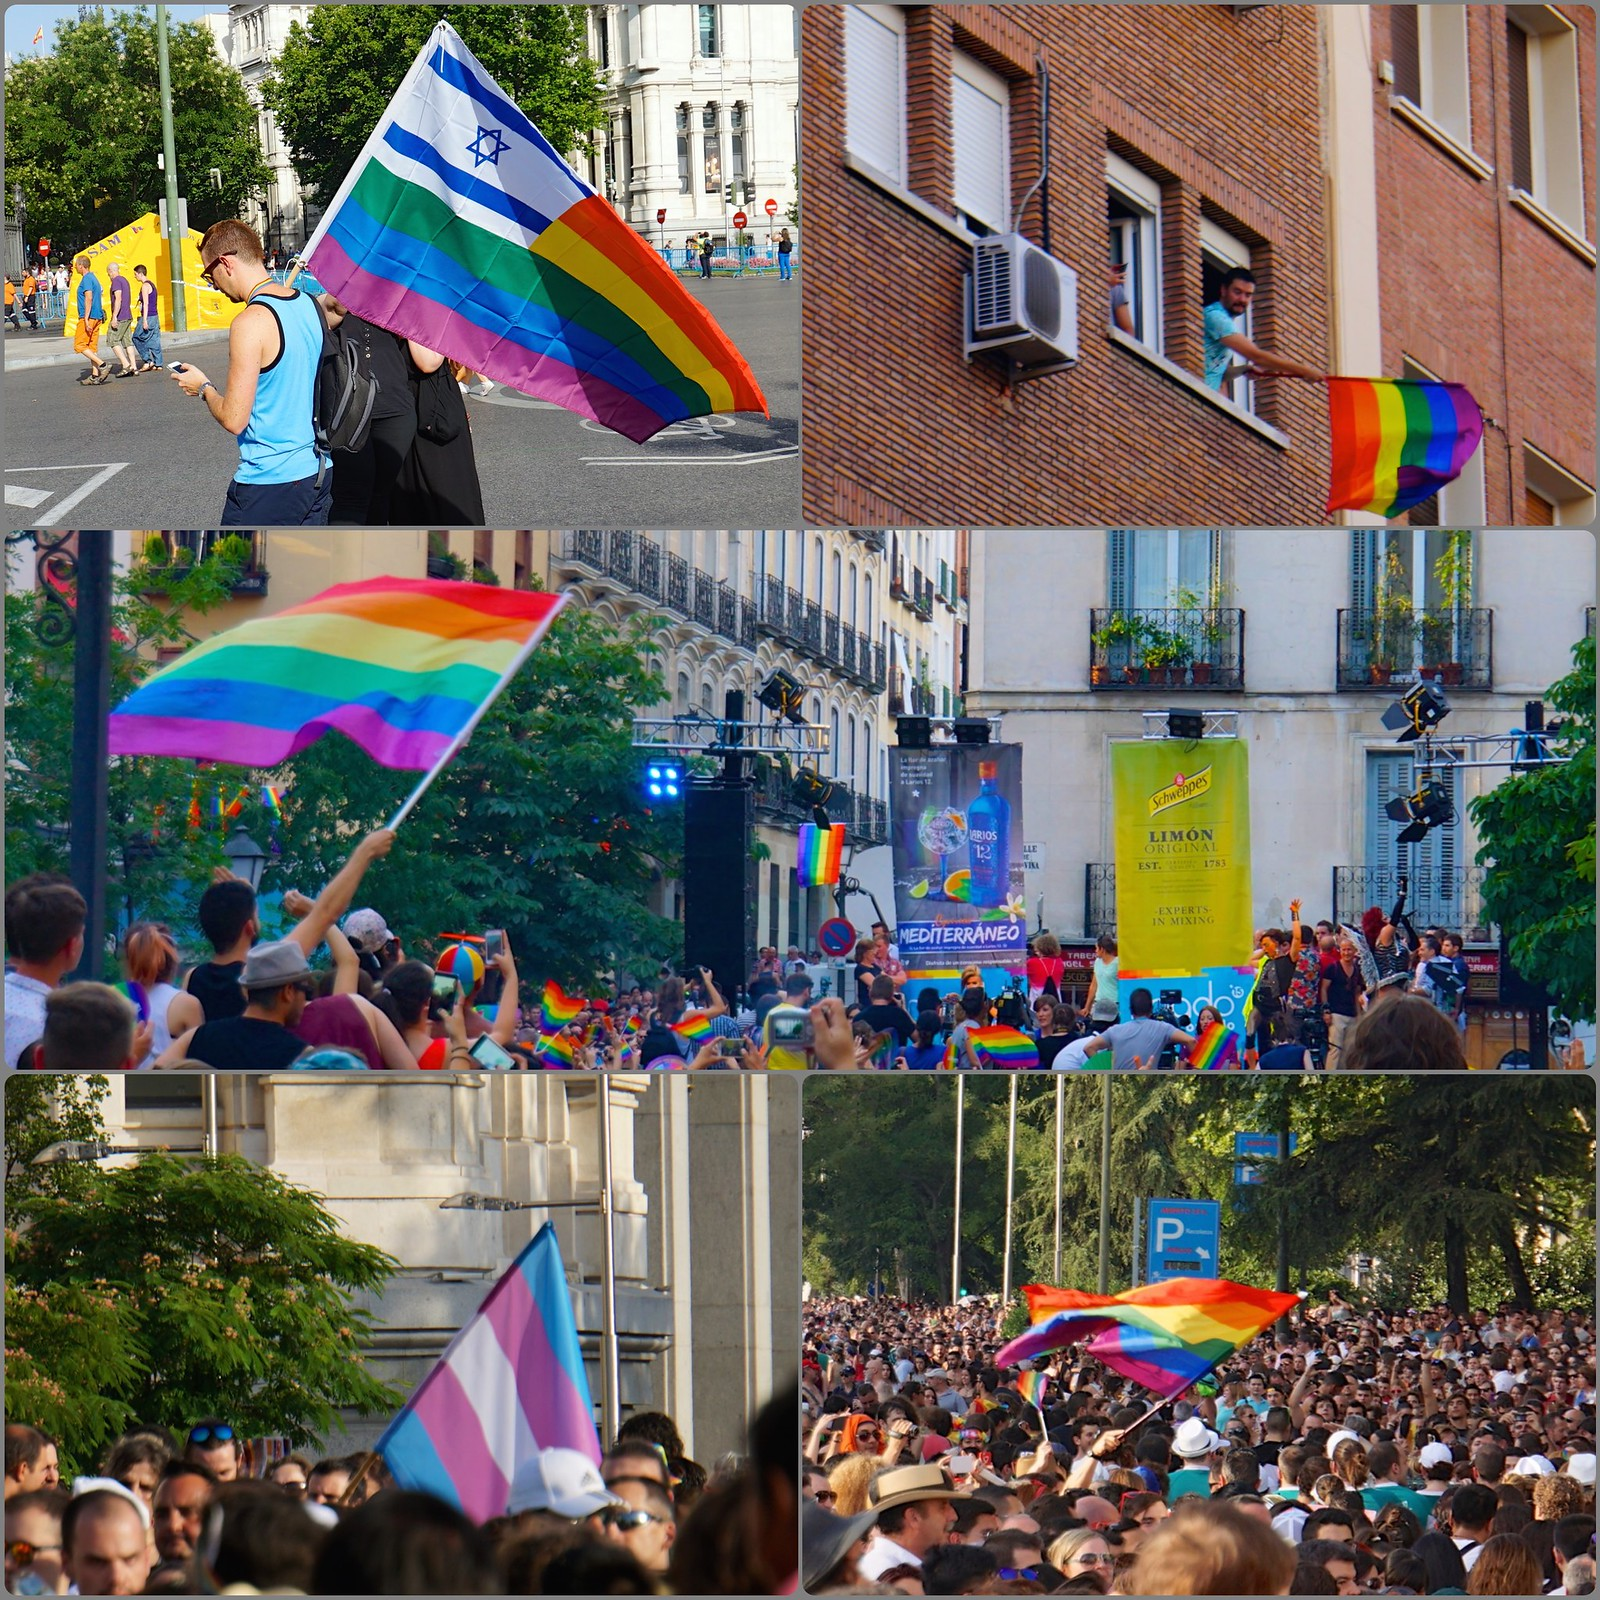 Madrid Pride Orgullo 2015 Power of Flags Collage 58789